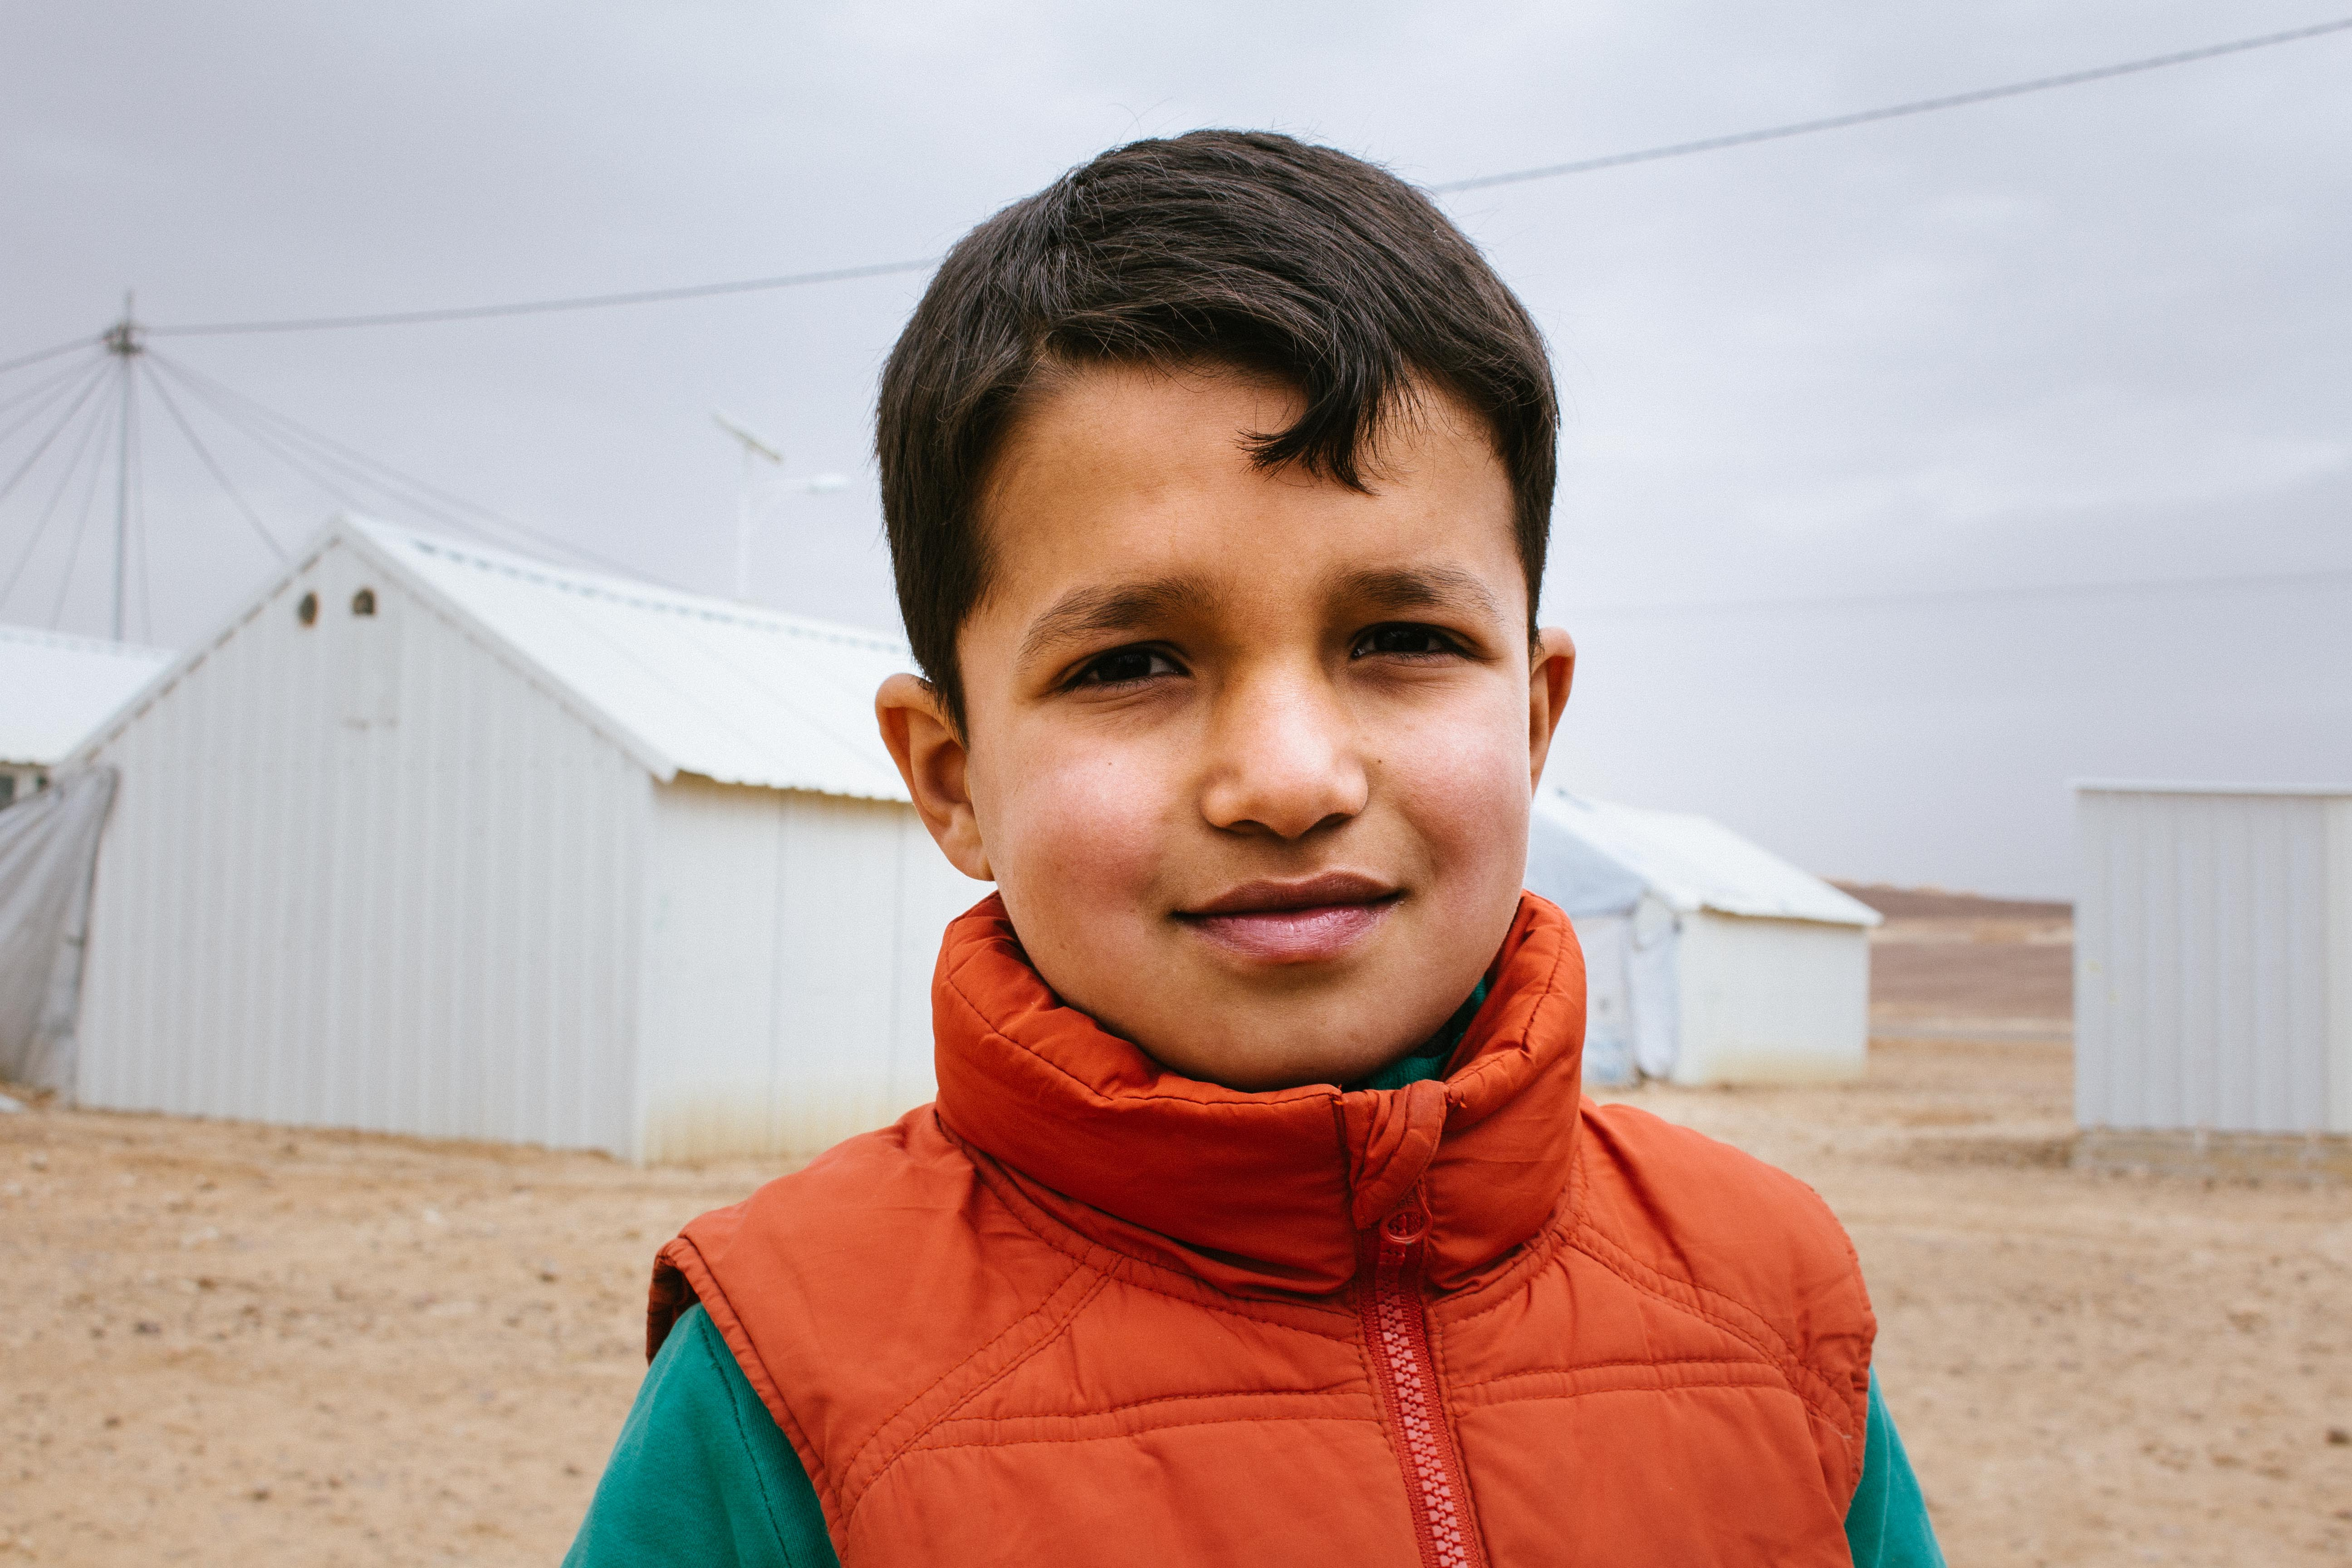 What is life like for a Syrian refugee child?